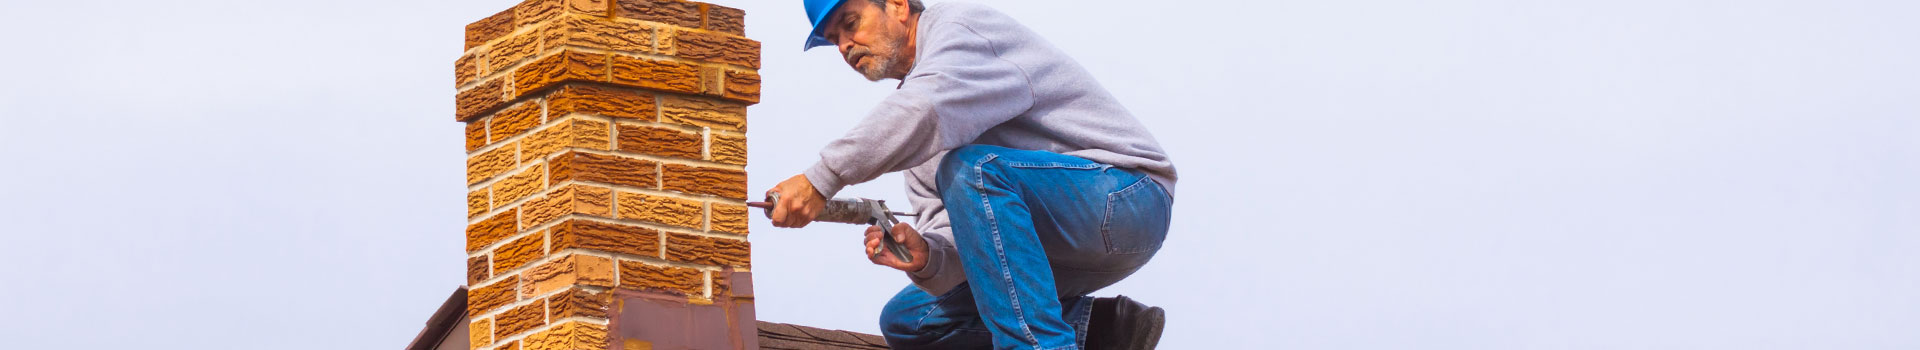 man sealing chimney with caulking gun